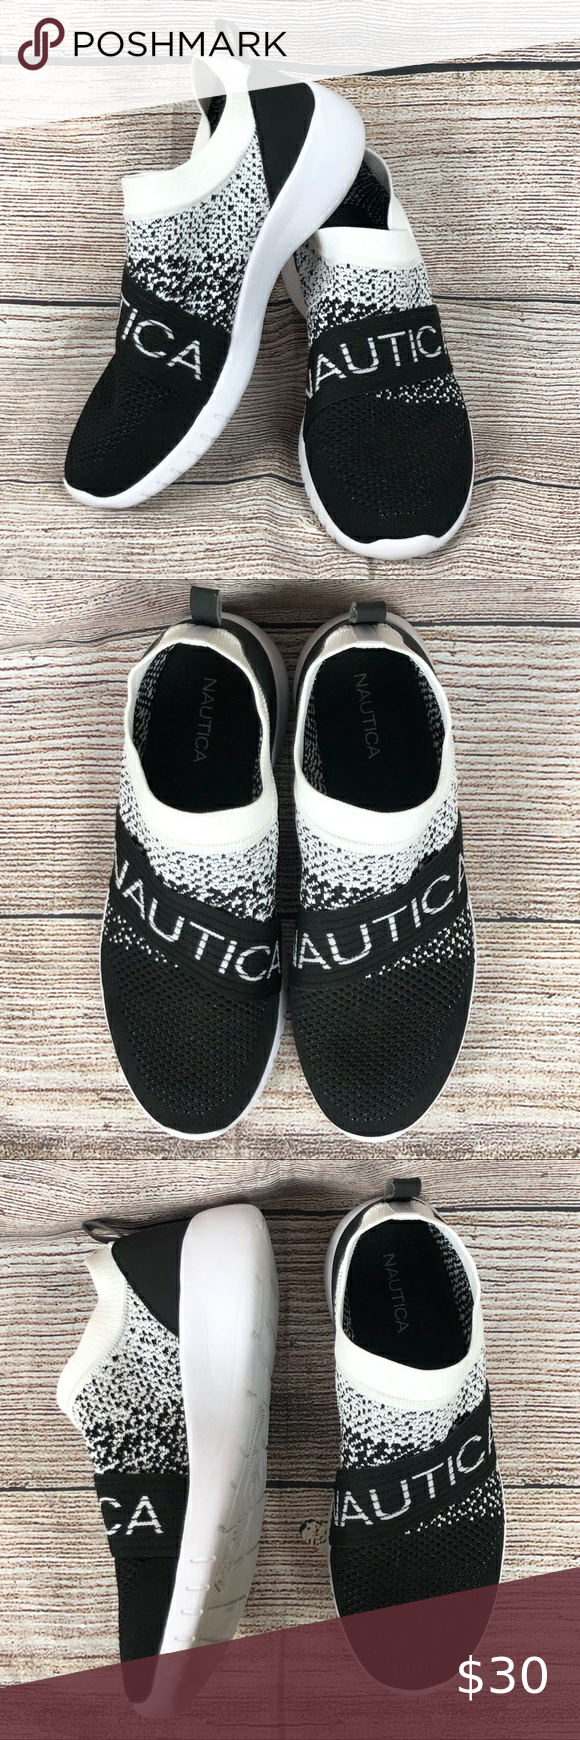 easy soft black shoes price